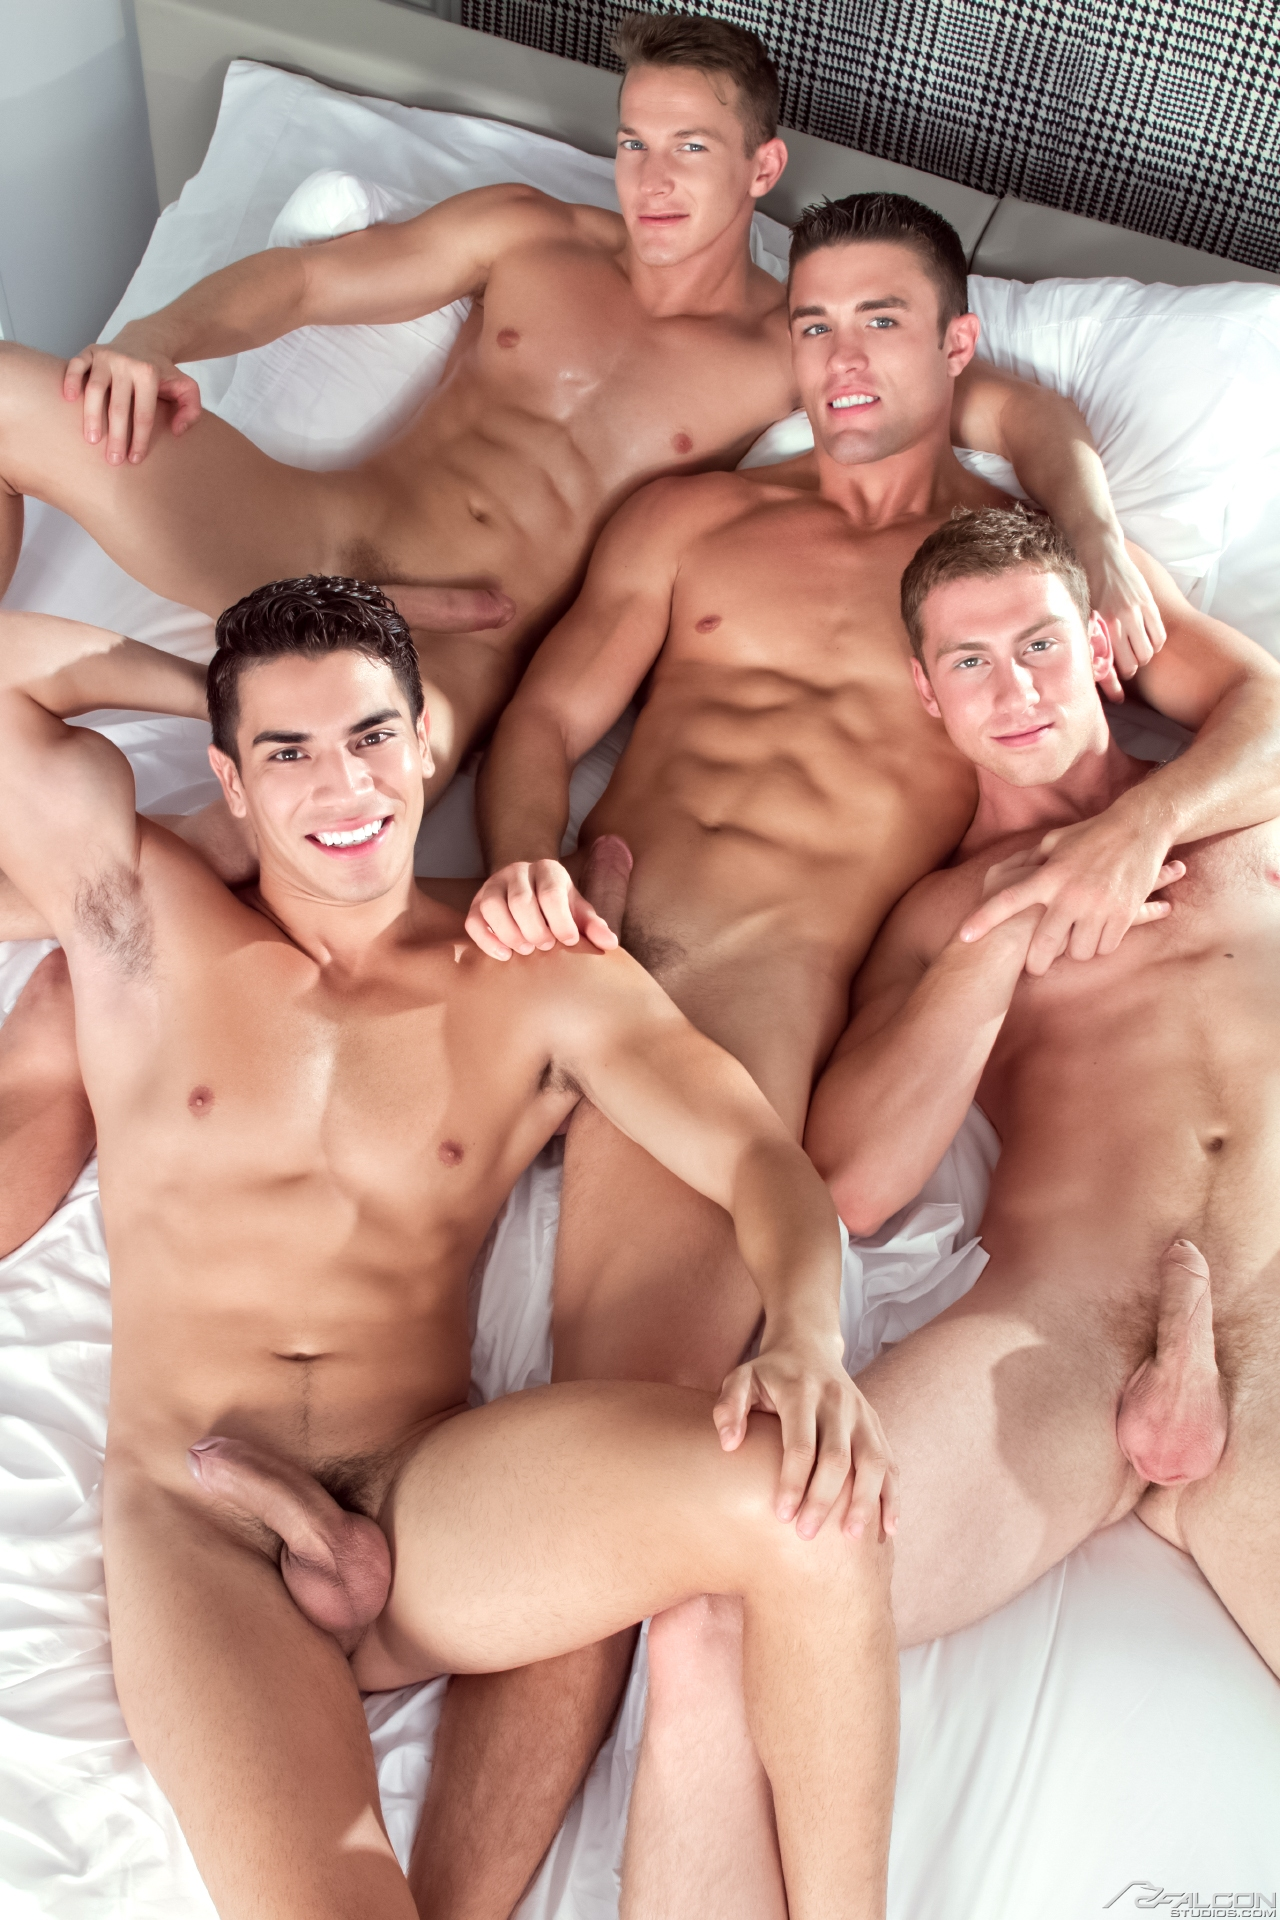 Free gay porn in boys movies xxx hung brez 4